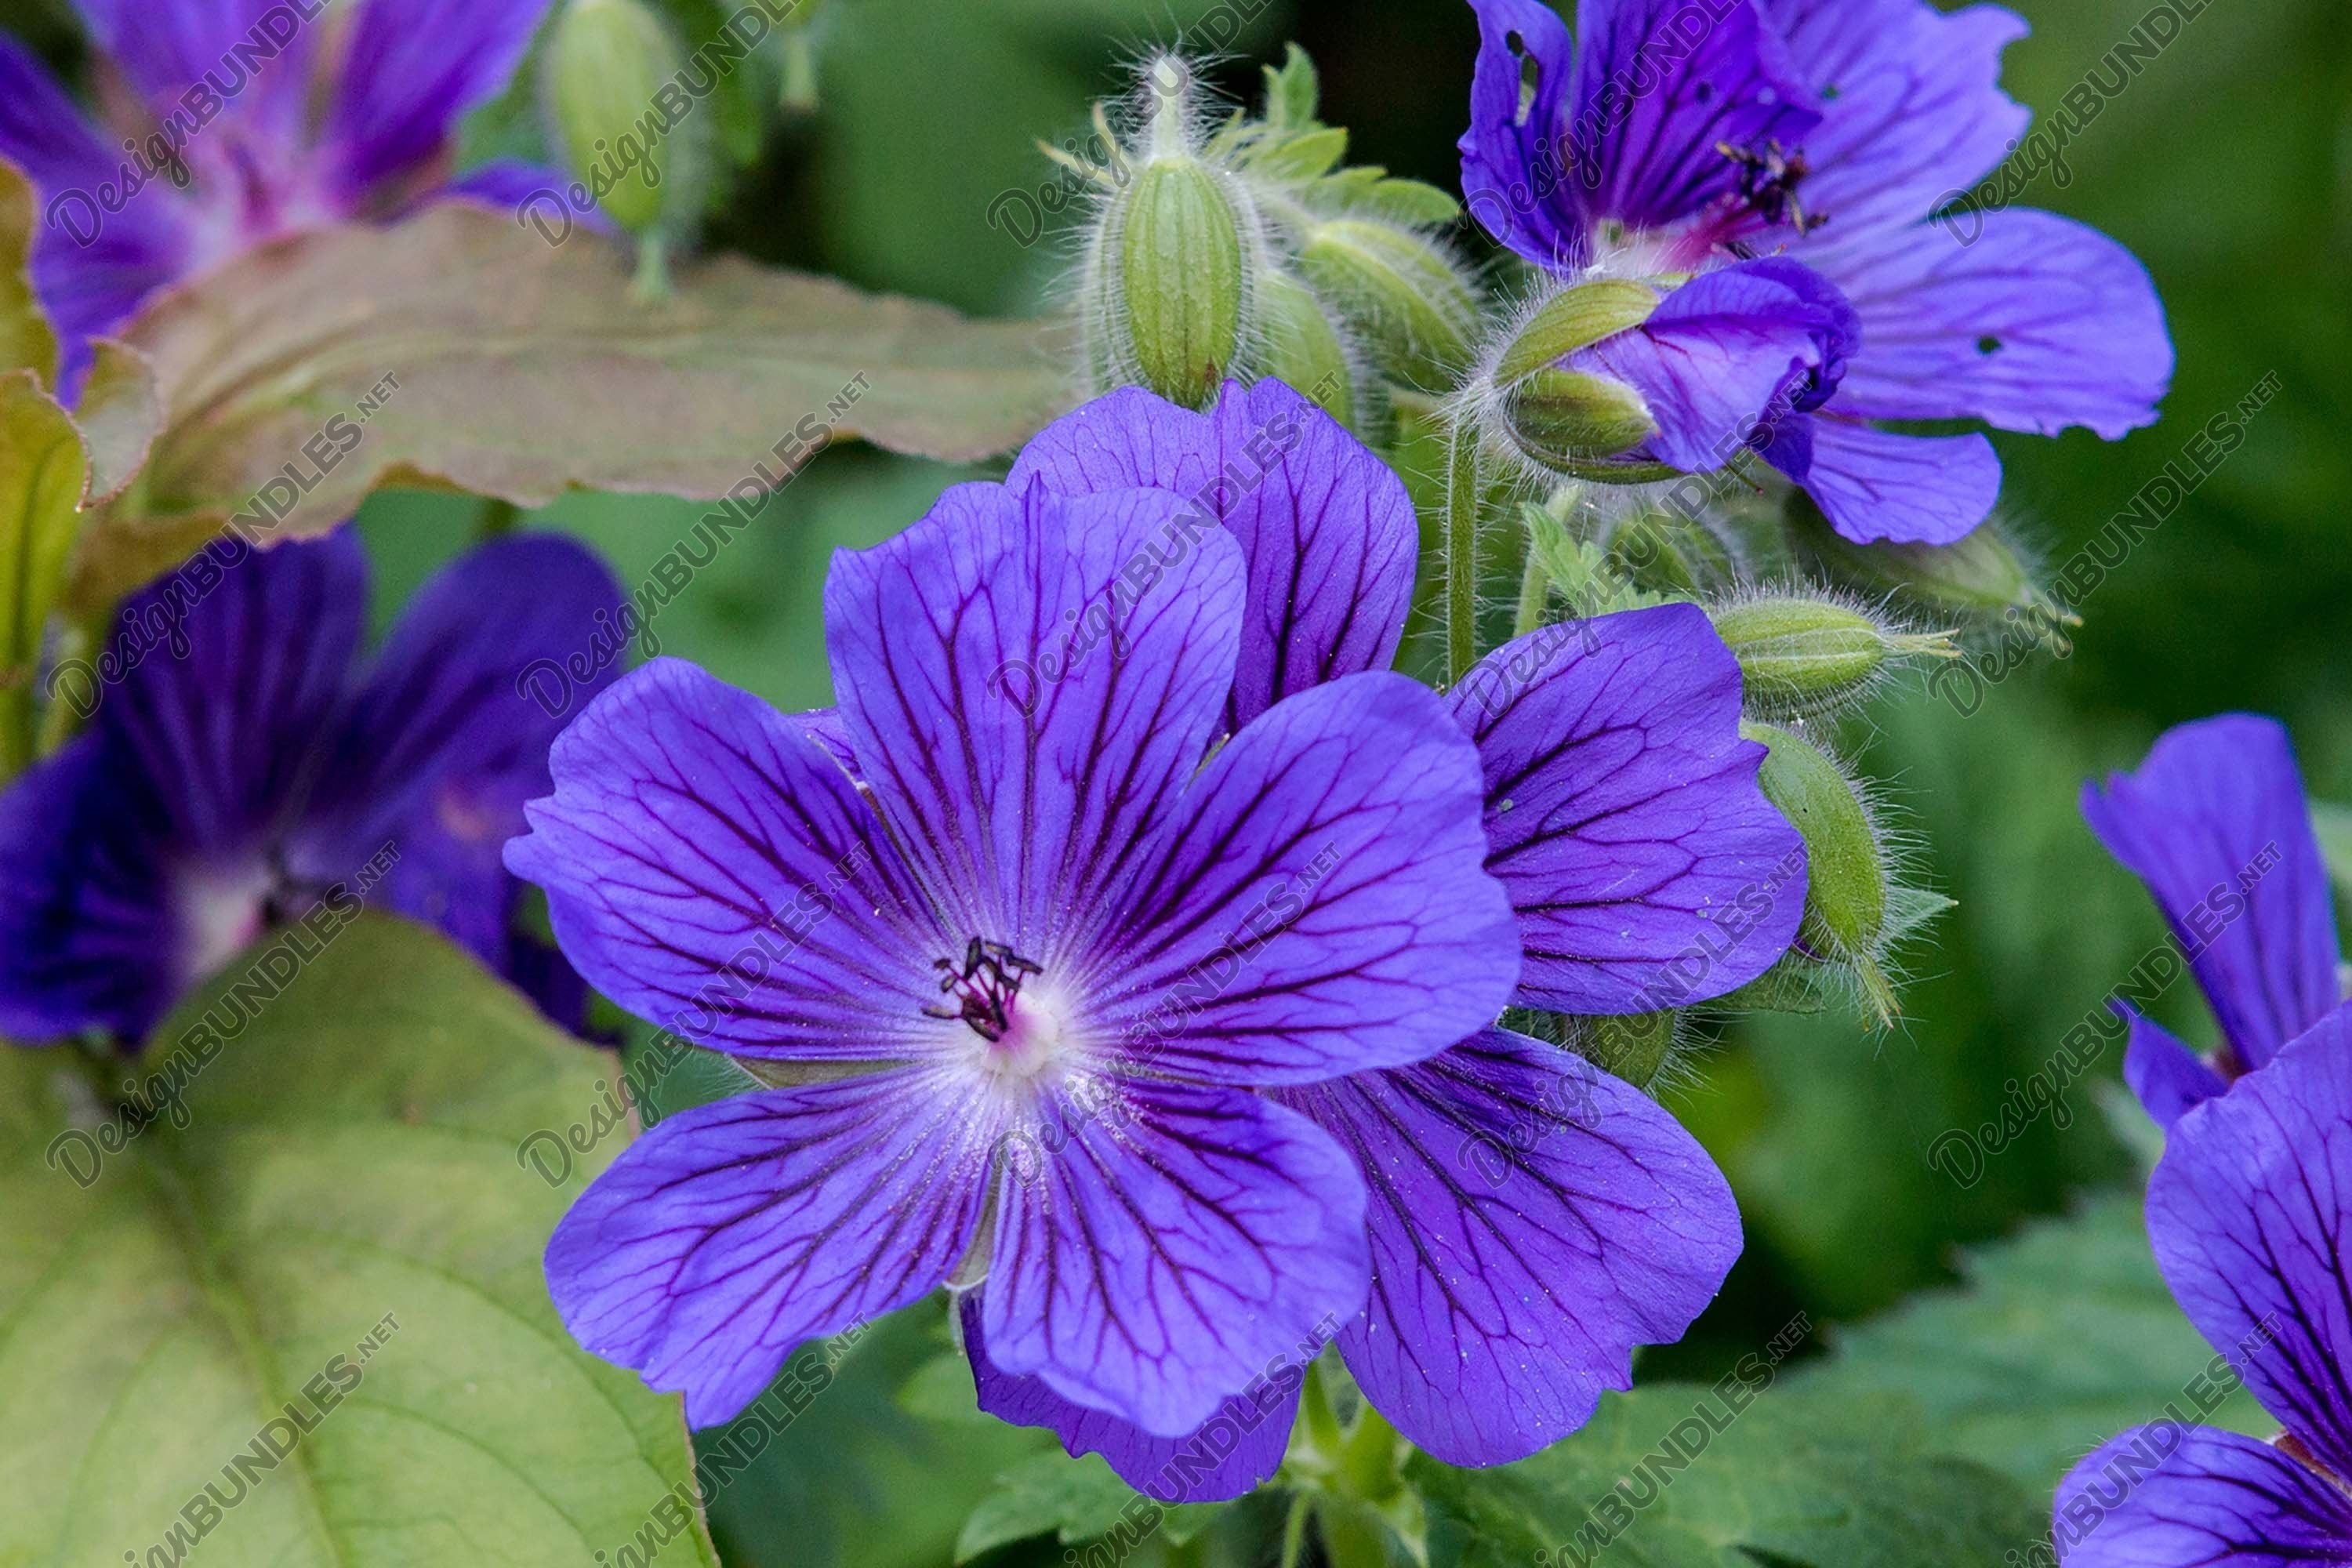 Stock Photo - Close-Up Of Purple Flowering Plants example image 1